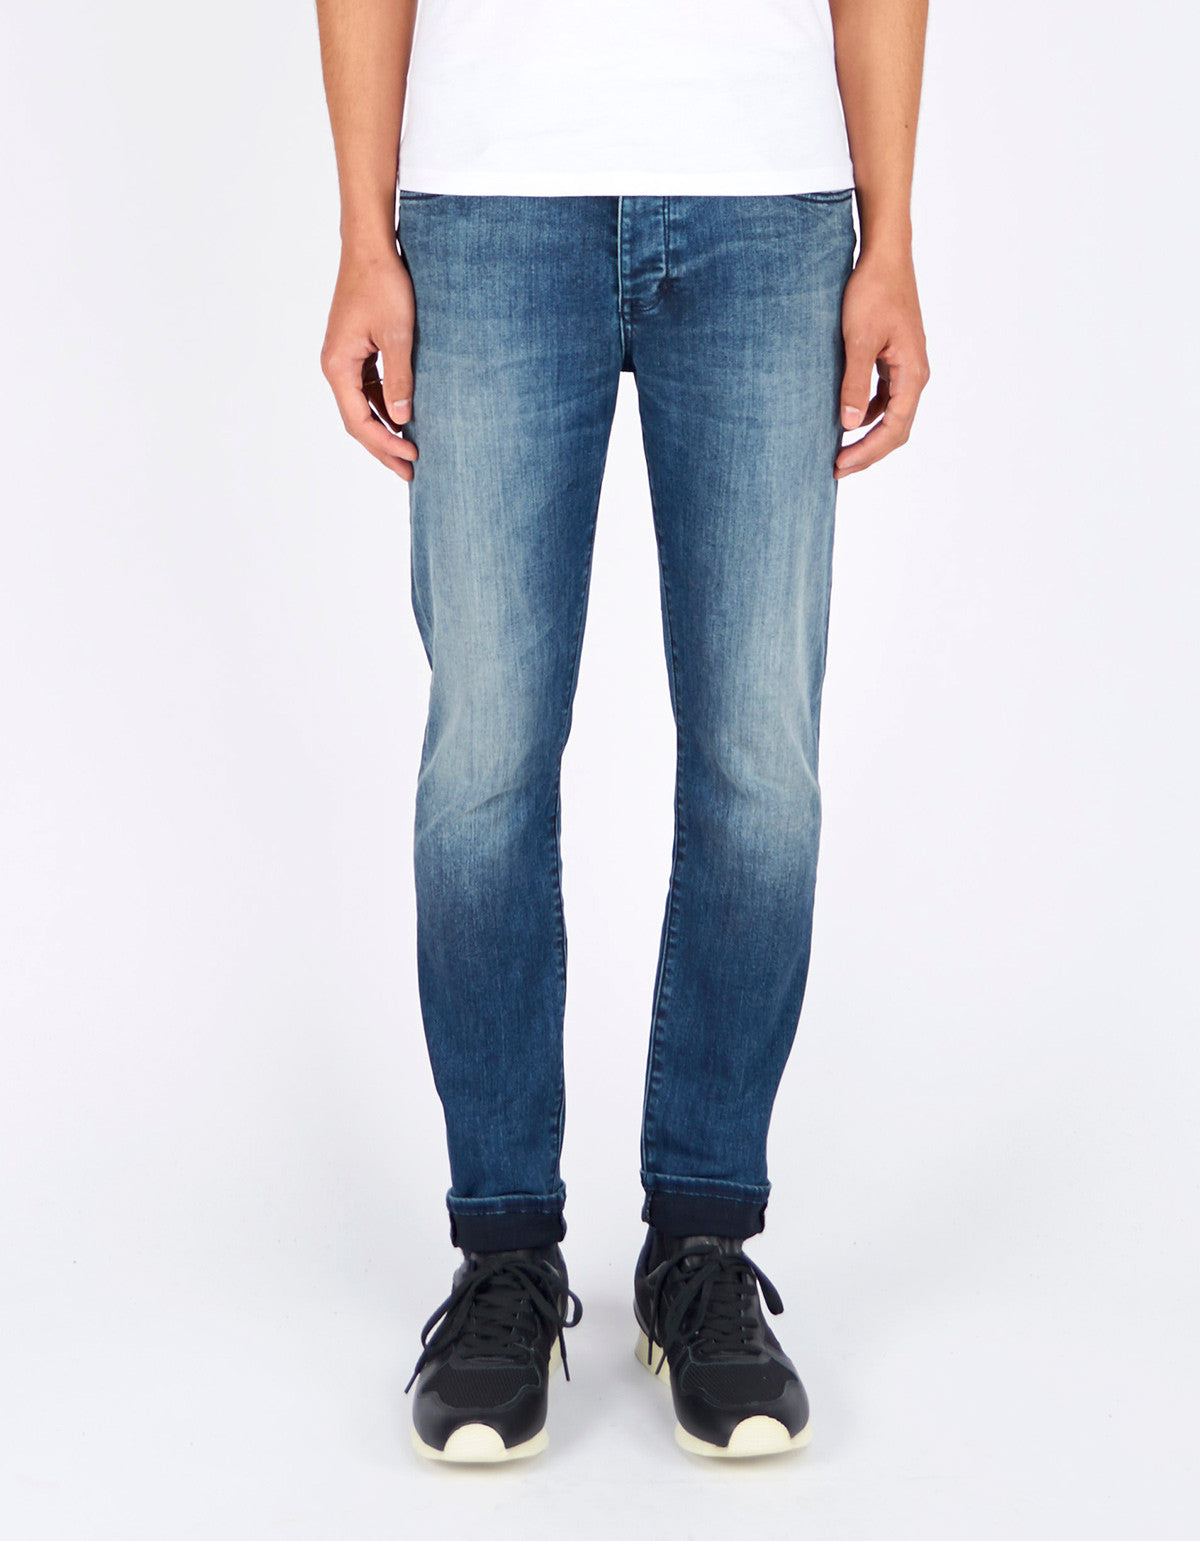 Neuw Ray Tapered Jean Blue Washed - Still Life - 1